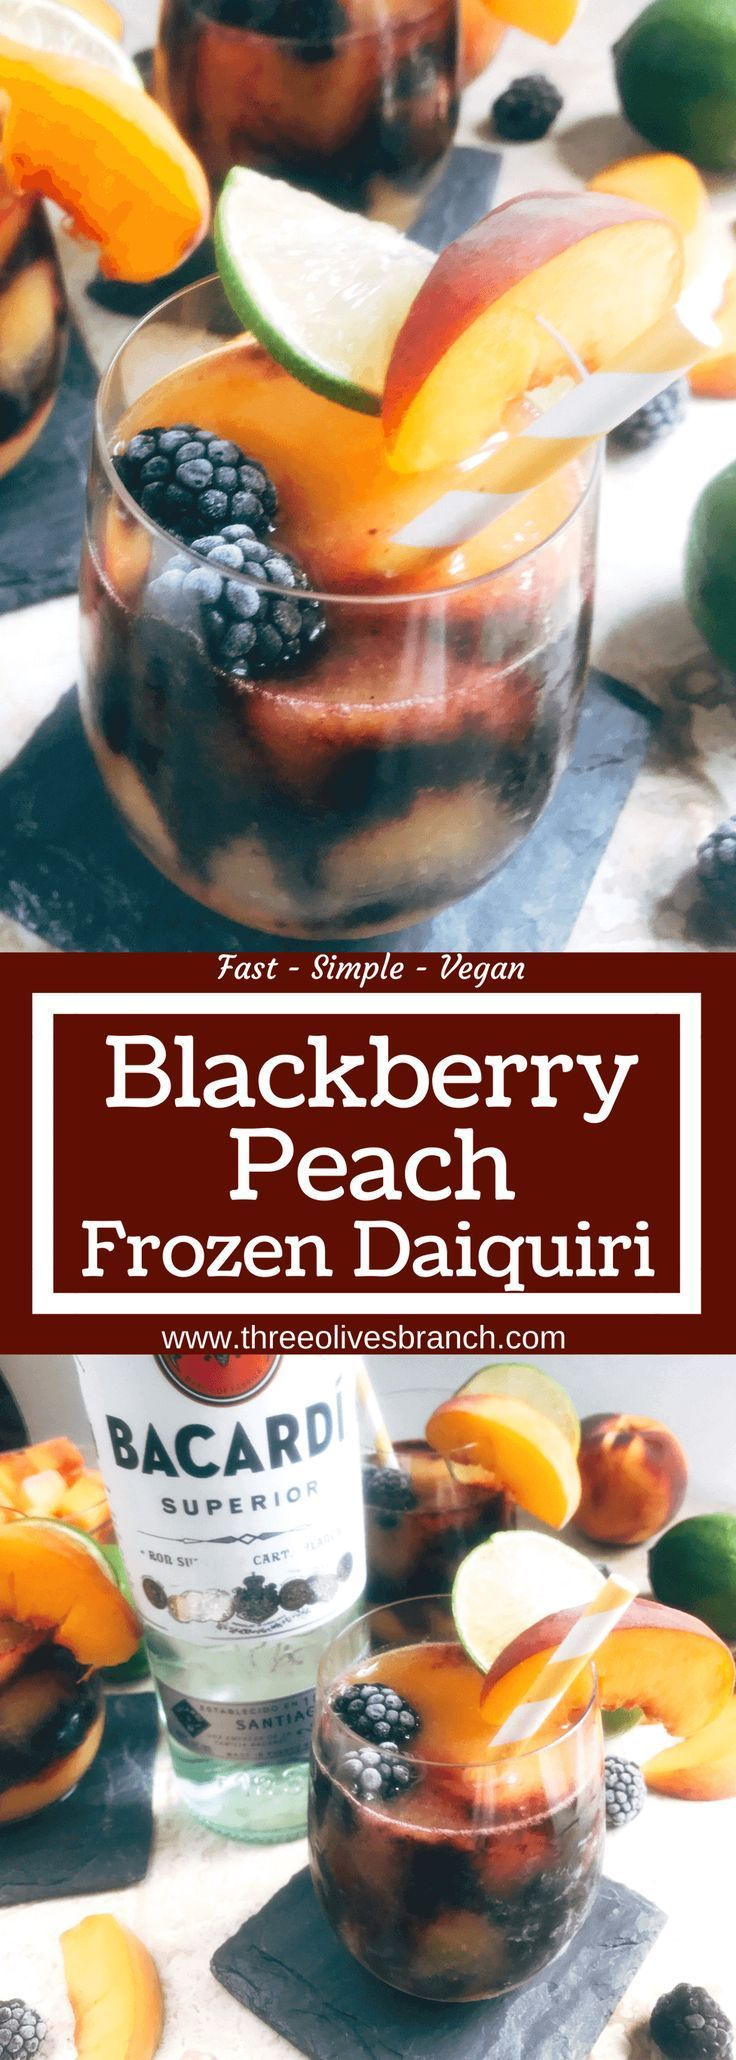 A quick and simple blended alcoholic beverage perfect for warm summer weather. Peaches and blackberries are blended with Bacardi Superior Rum, simple syrup, and lime to make this frozen layered drink. Just 10 minutes for this easy cocktail. Vegan, vegetarian. Blackberry Peach Frozen Daiquiri | Three Olives Branch | www.threeolivesbranch.com  #RumInTheSun #ad